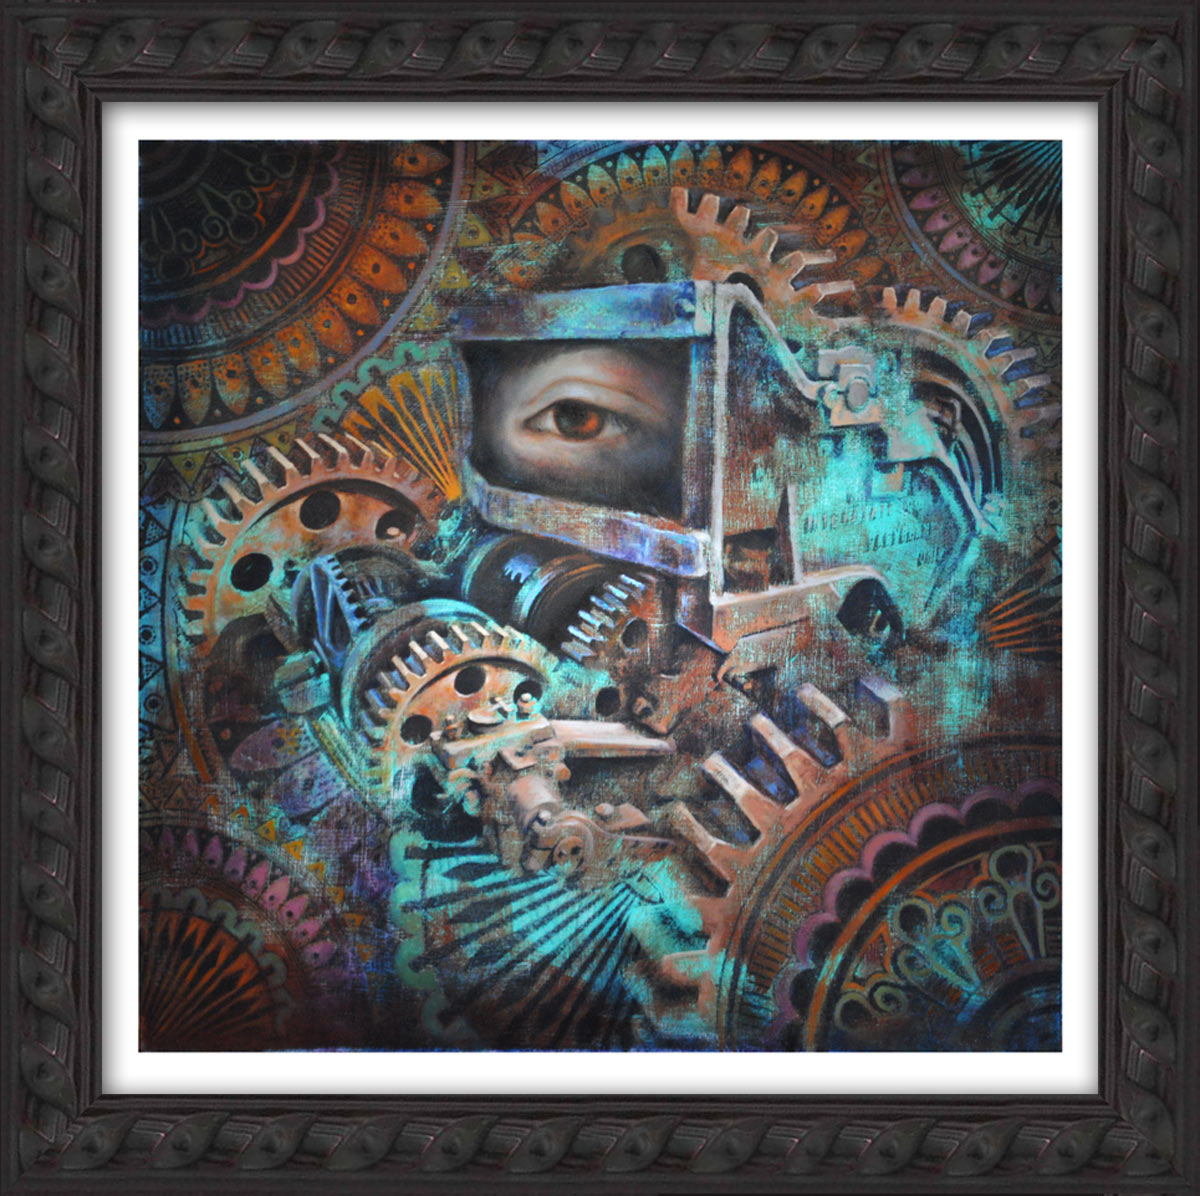 Beau Stanton Art Print - Mythos Mechanism - Framed